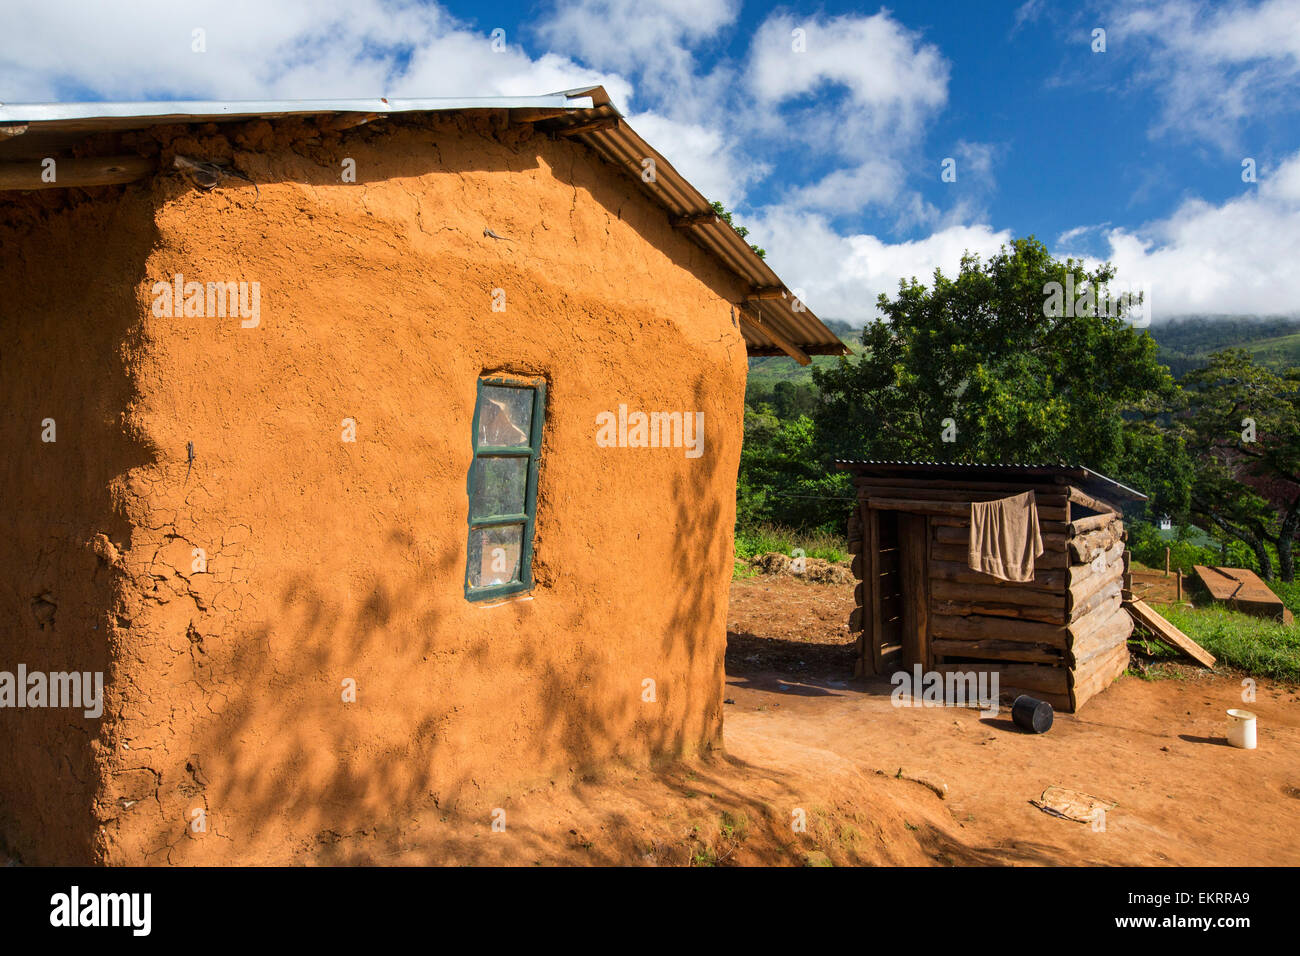 Malawi Is One Of The Poorest Countries In The World Many People - Why is malawi the poorest country in the world